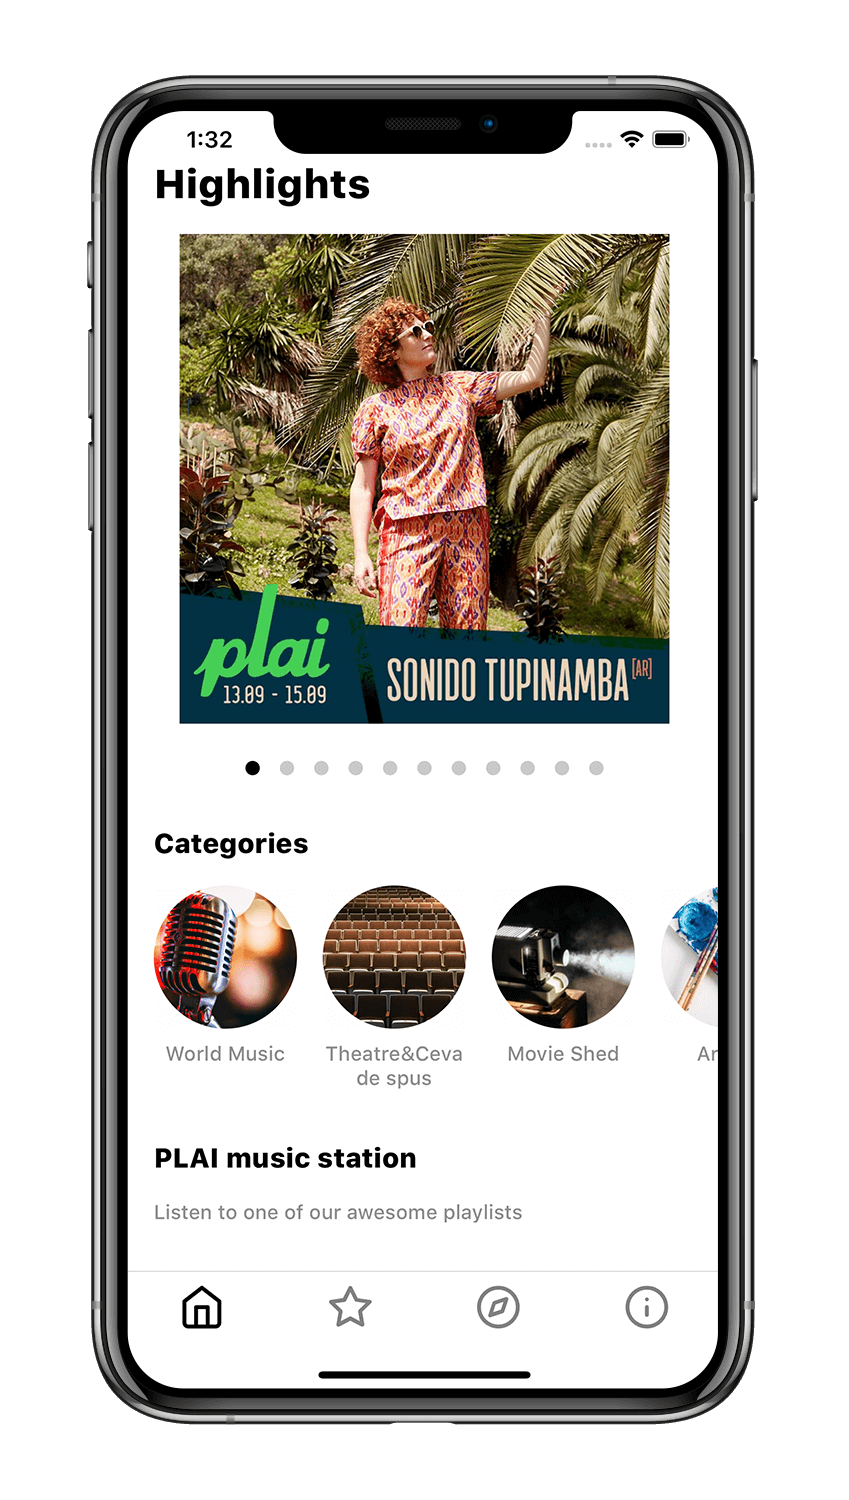 iOS/Android app development internship - PLAI Festival app